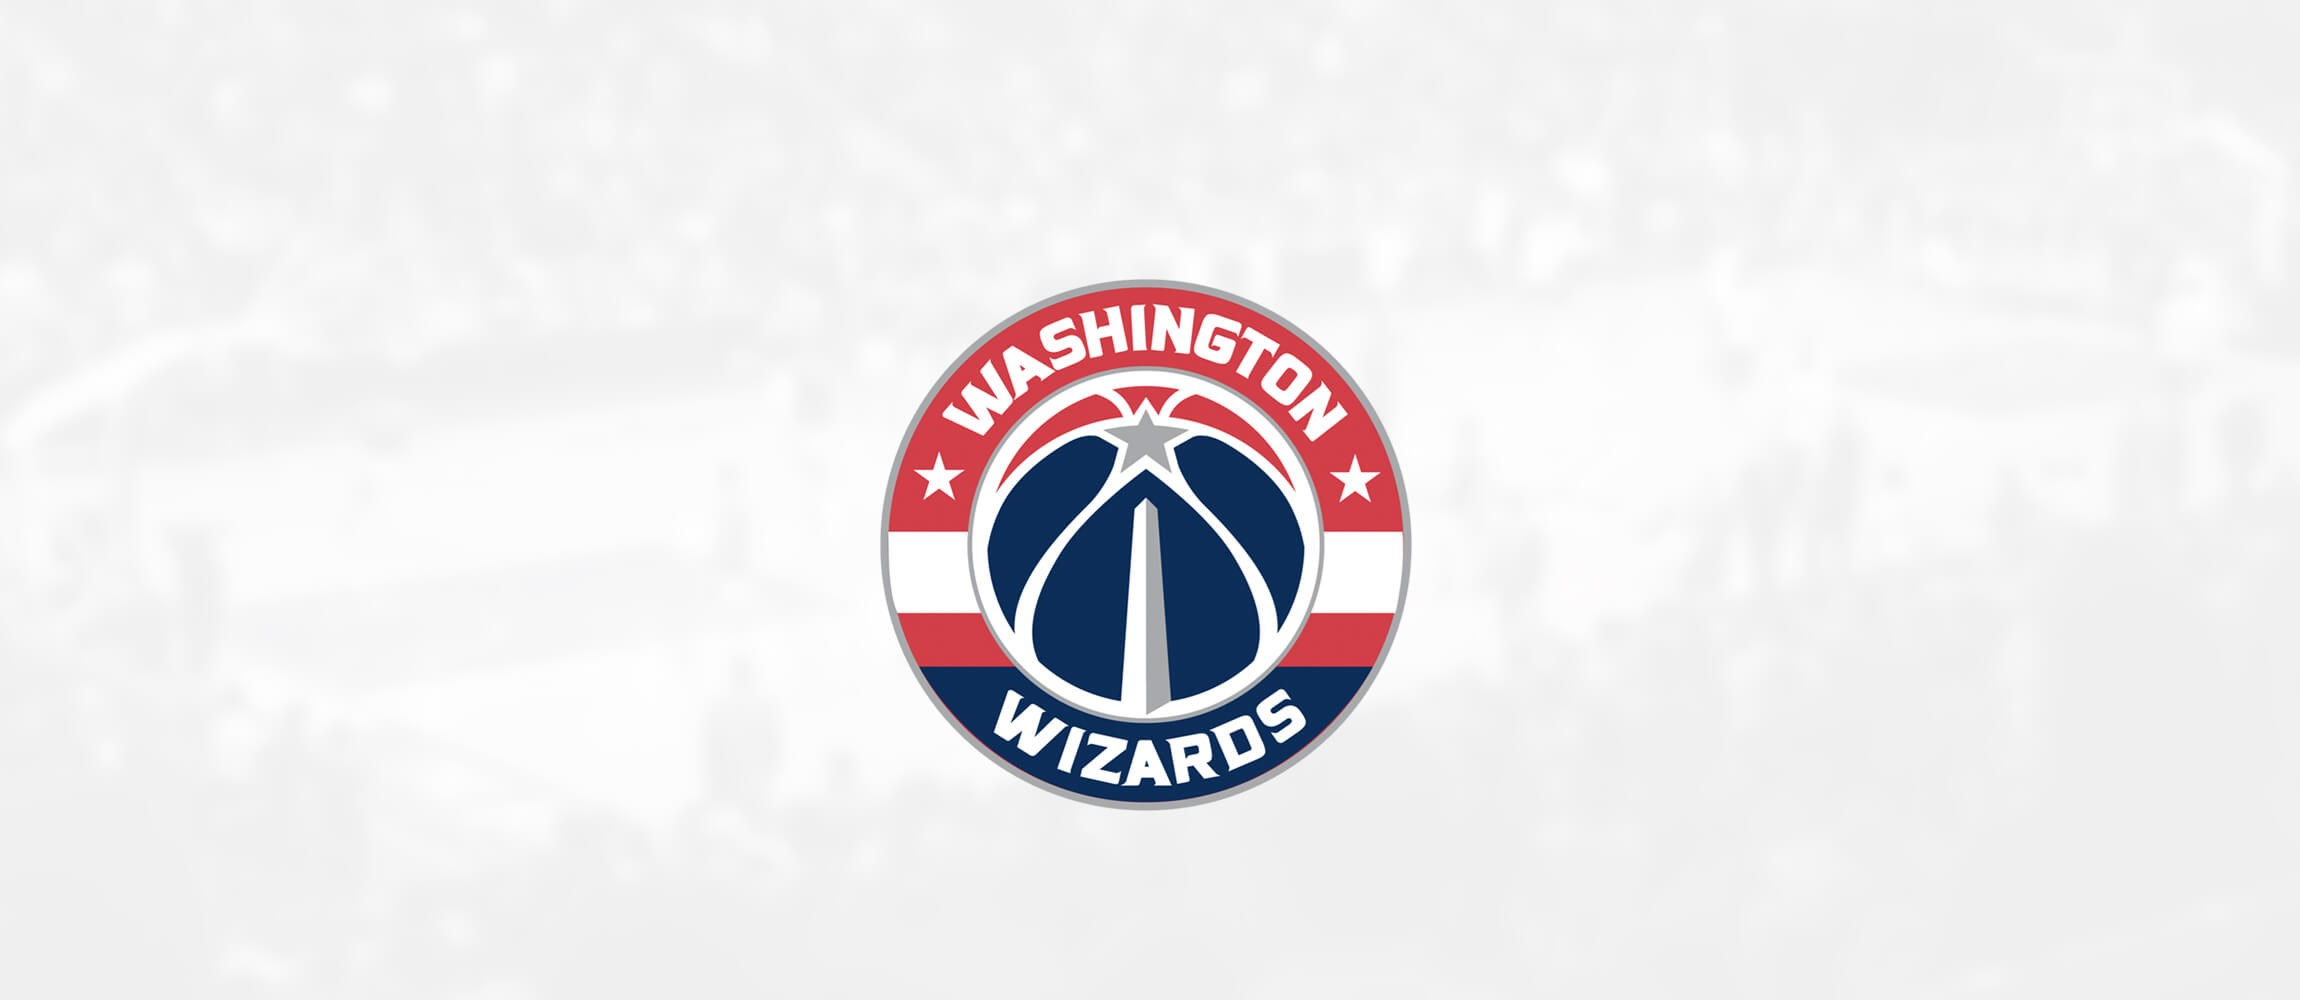 THE OFFICIAL DENTIST OF THE WASHINGTON WIZARDS. - Learn more about Dr. Deutsch, the official dentist of the Washington Wizards.